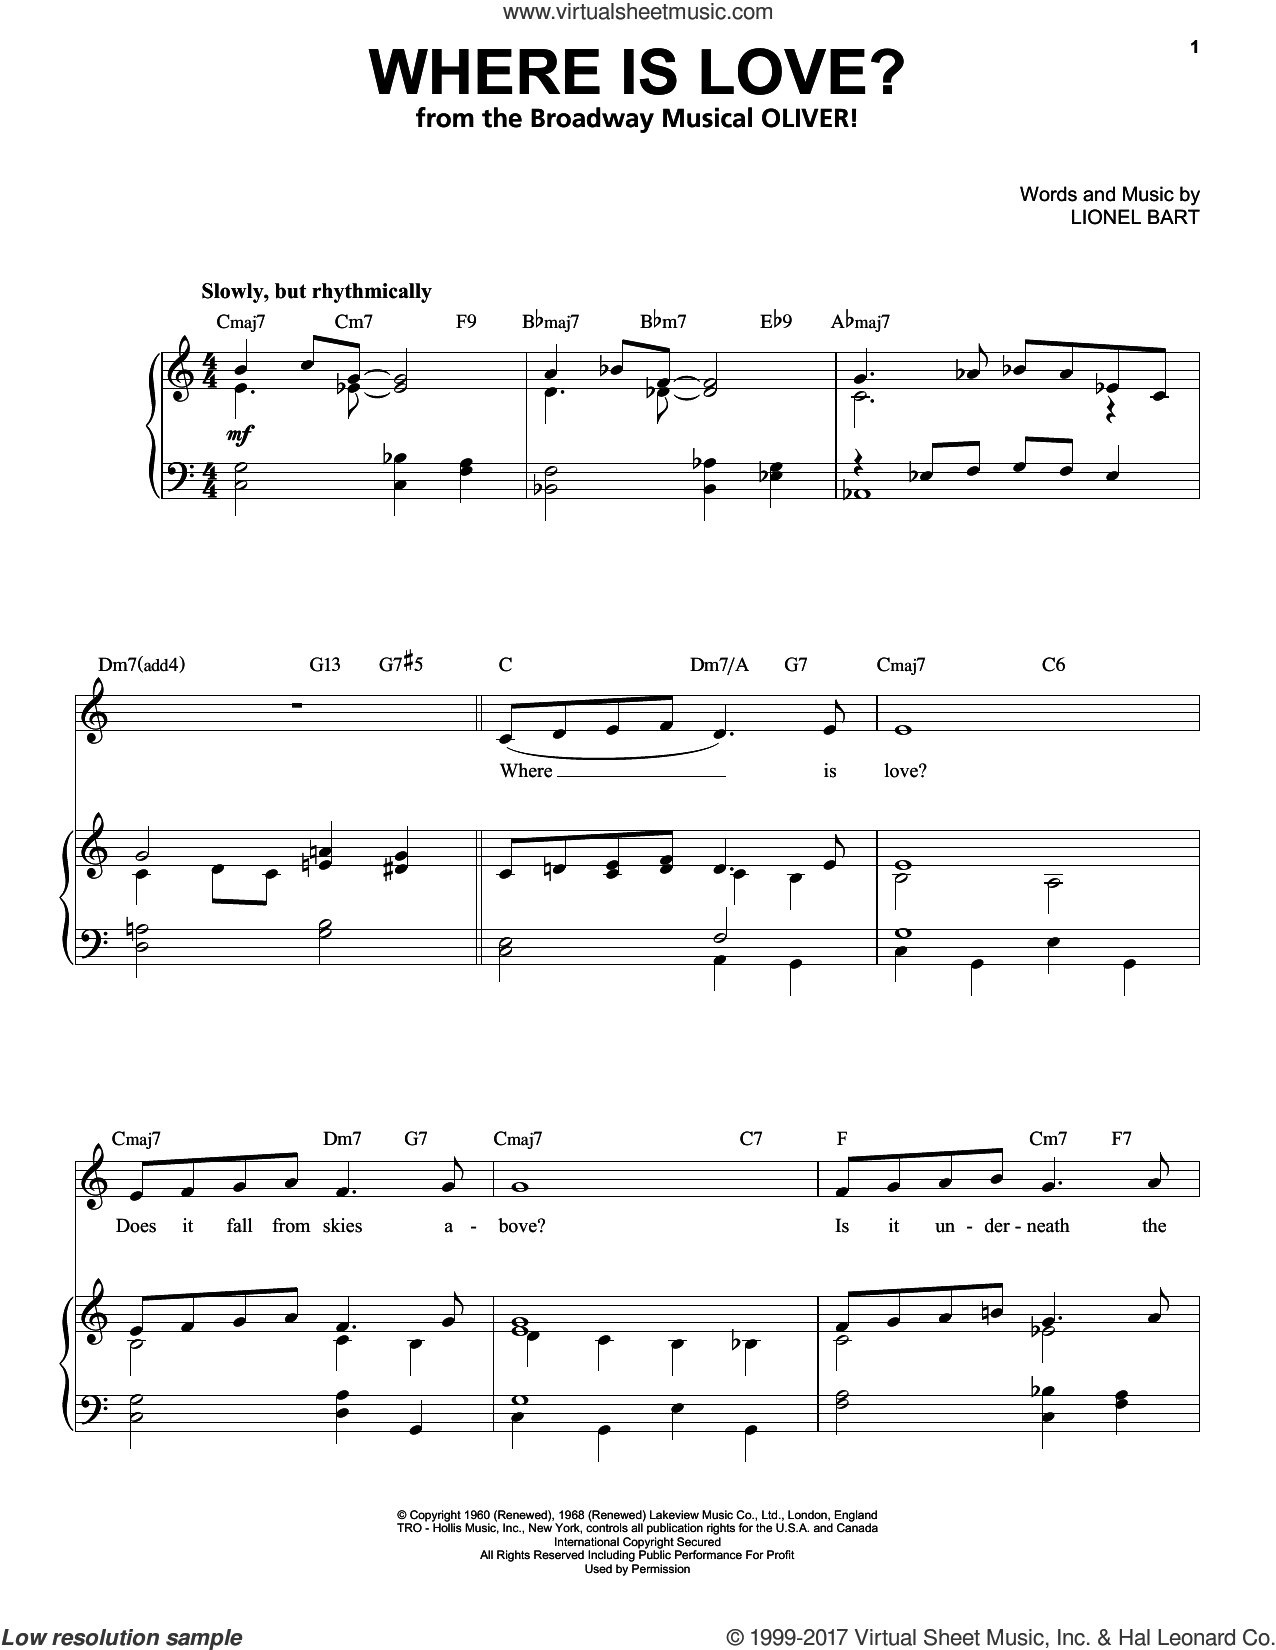 Where Is Love? sheet music for voice and piano (High Voice) by Lionel Bart, intermediate skill level